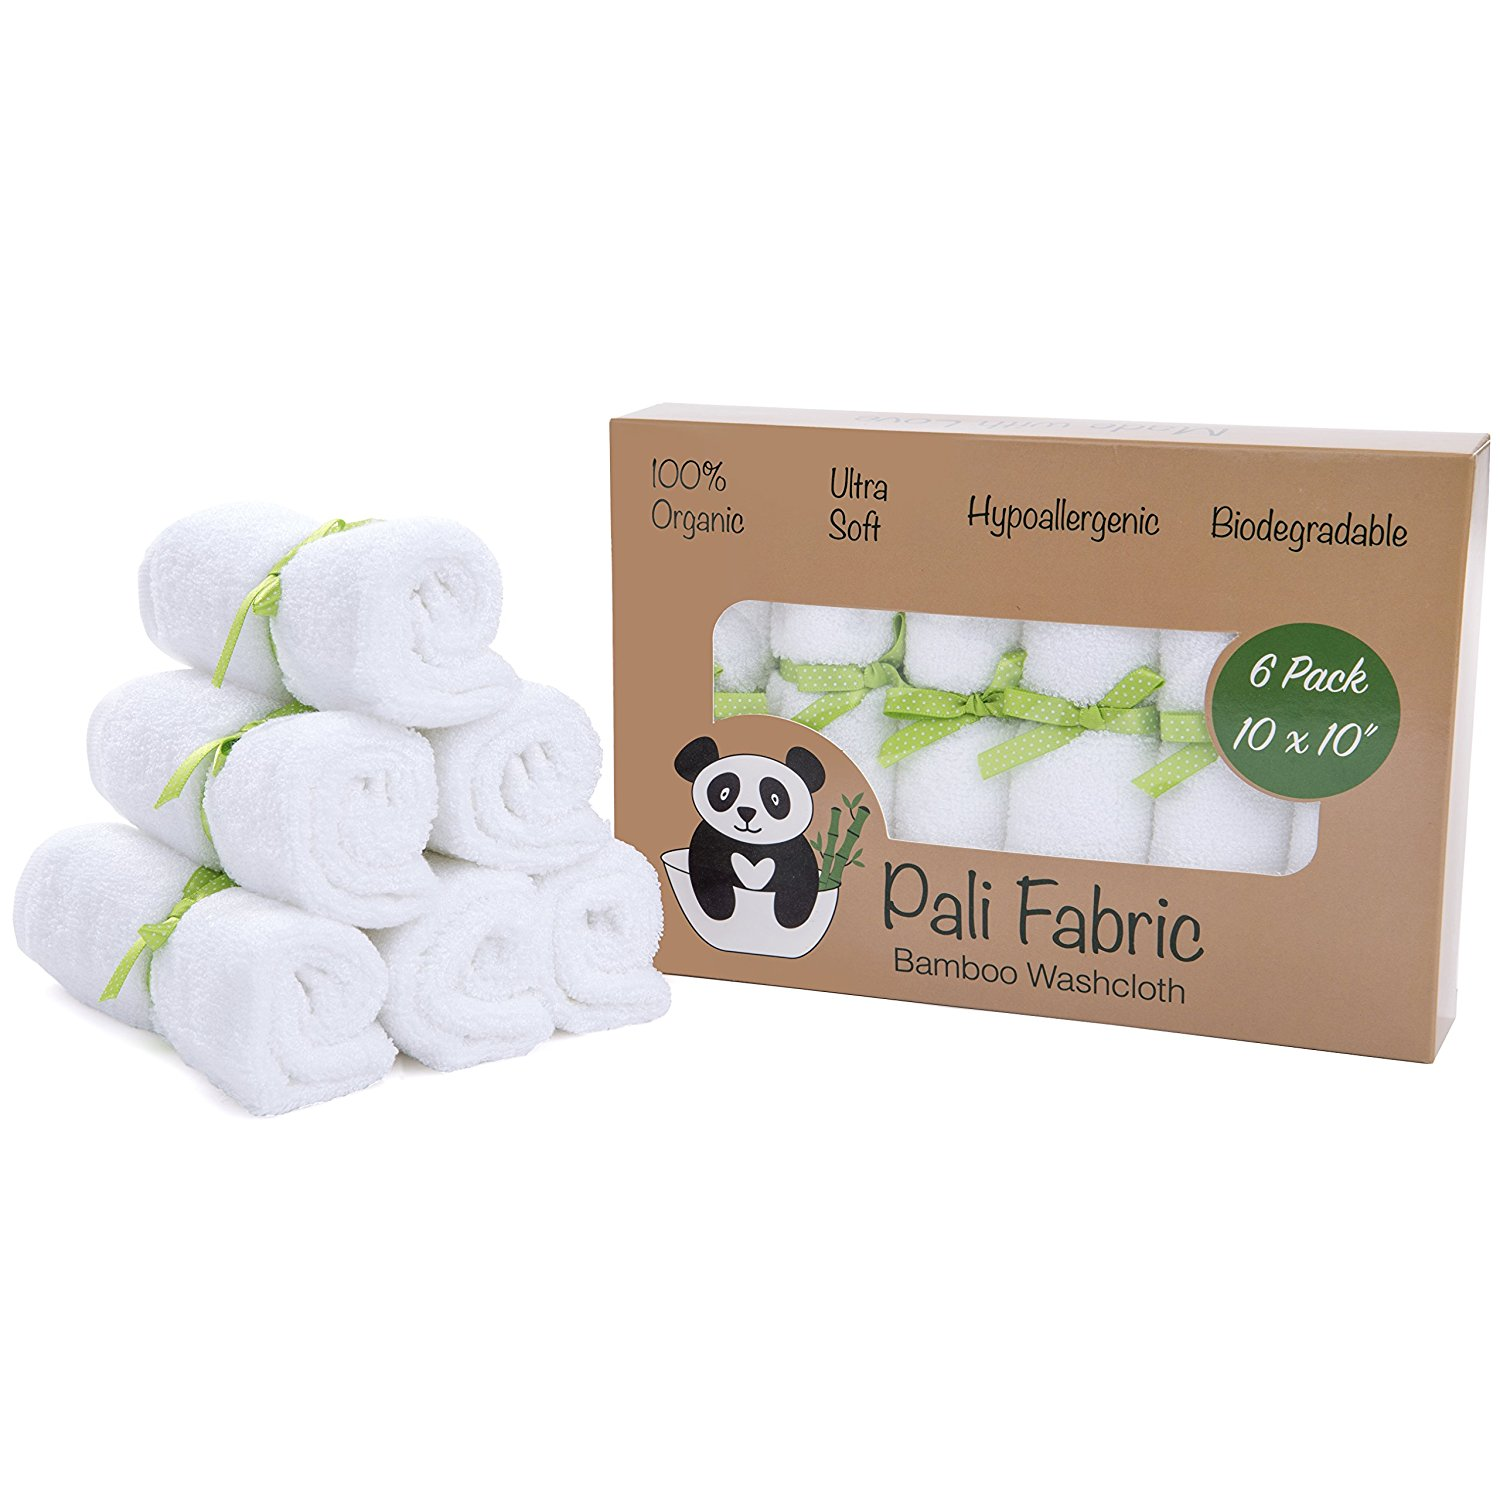 Organic Bamboo Washcloths By Pali Fabric | 100% Organic All-Natural Washcloth | Anti-bacterial and Hypoallergenic for Sensitive Skin | Ultra Soft and Durable Baby Bath Towels | 10x10 Inch (6 Pack)